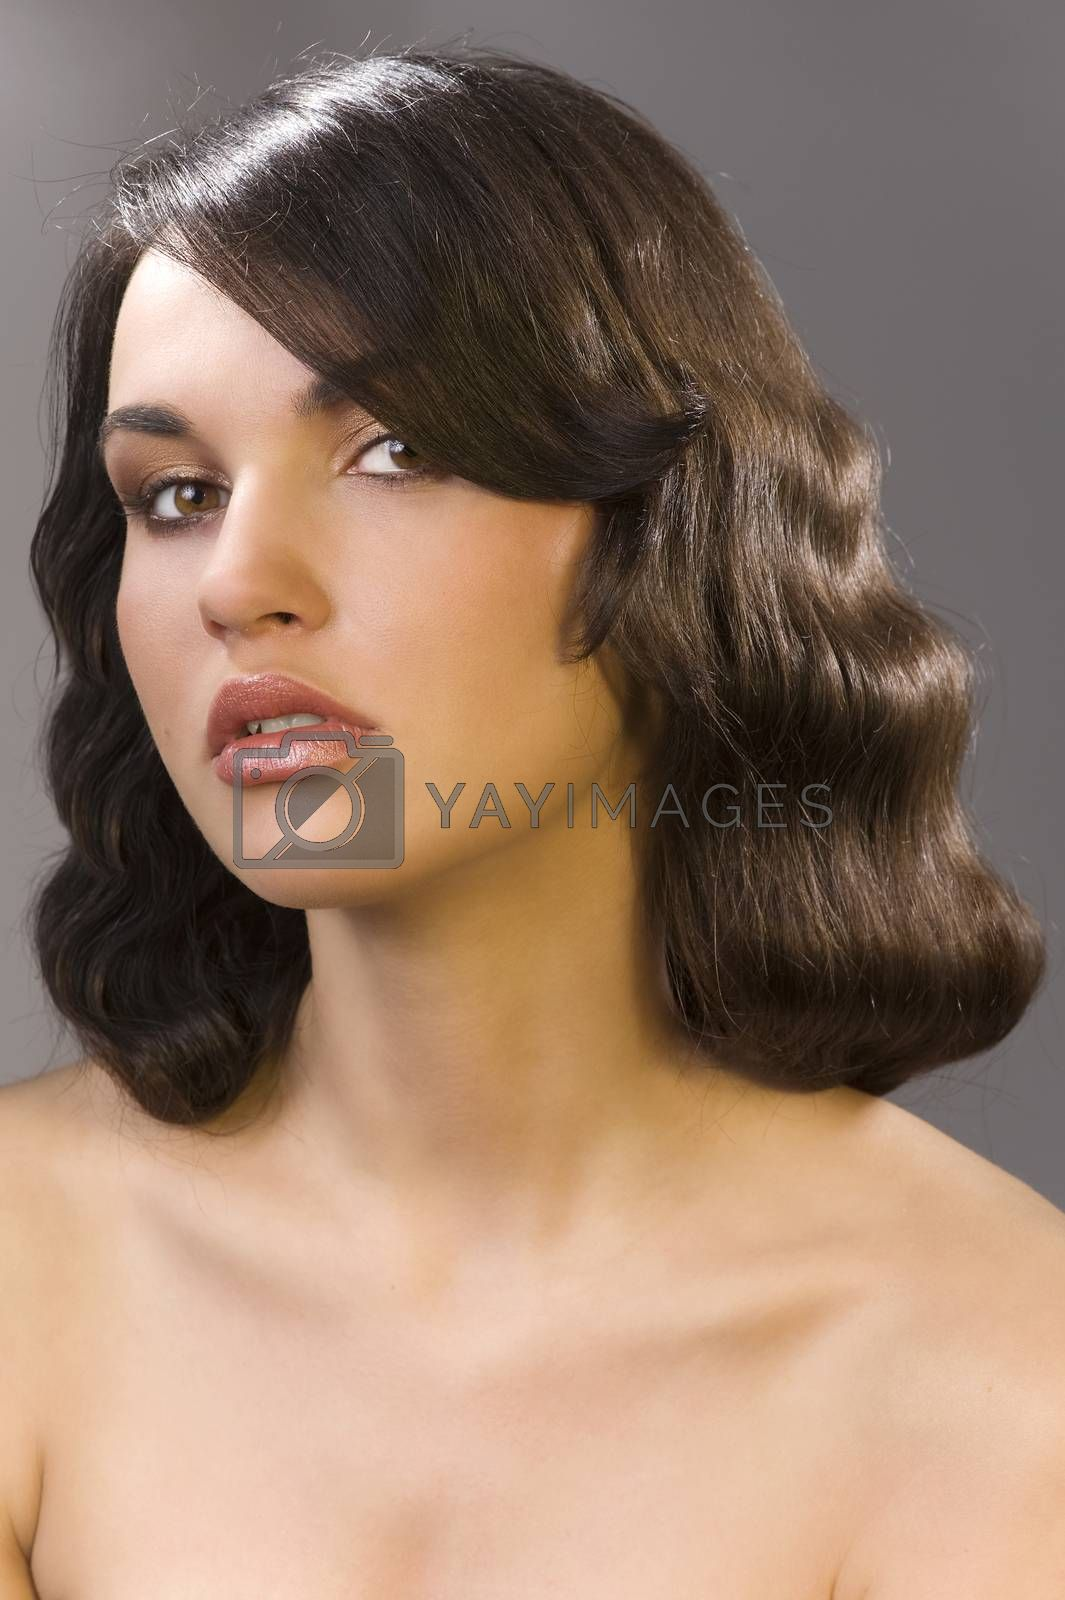 Royalty free image of the old fashion coiffure by fotoCD